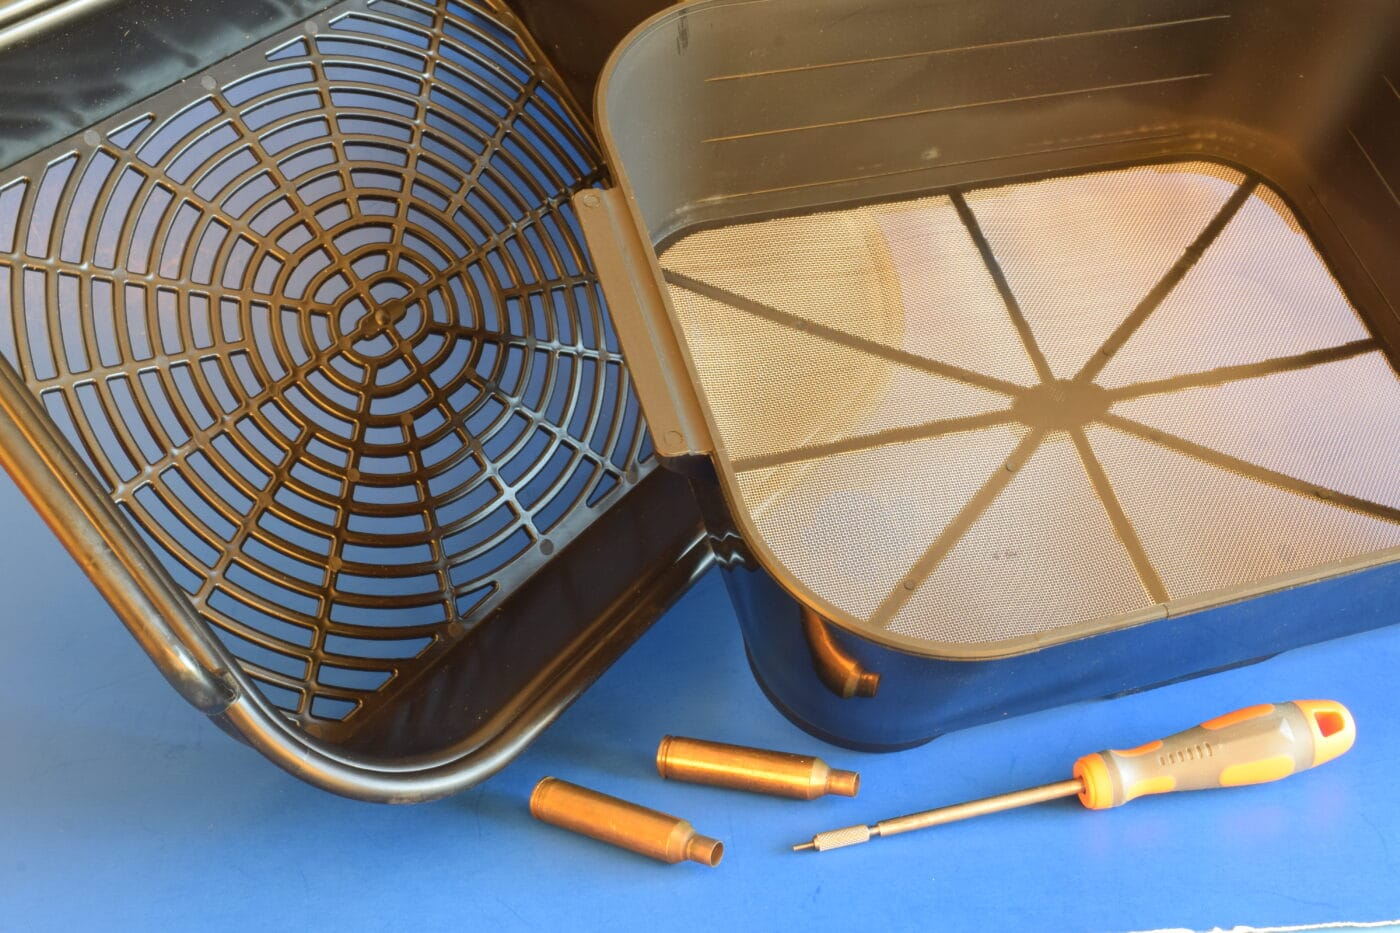 Sifting baskets for wet tumbling media